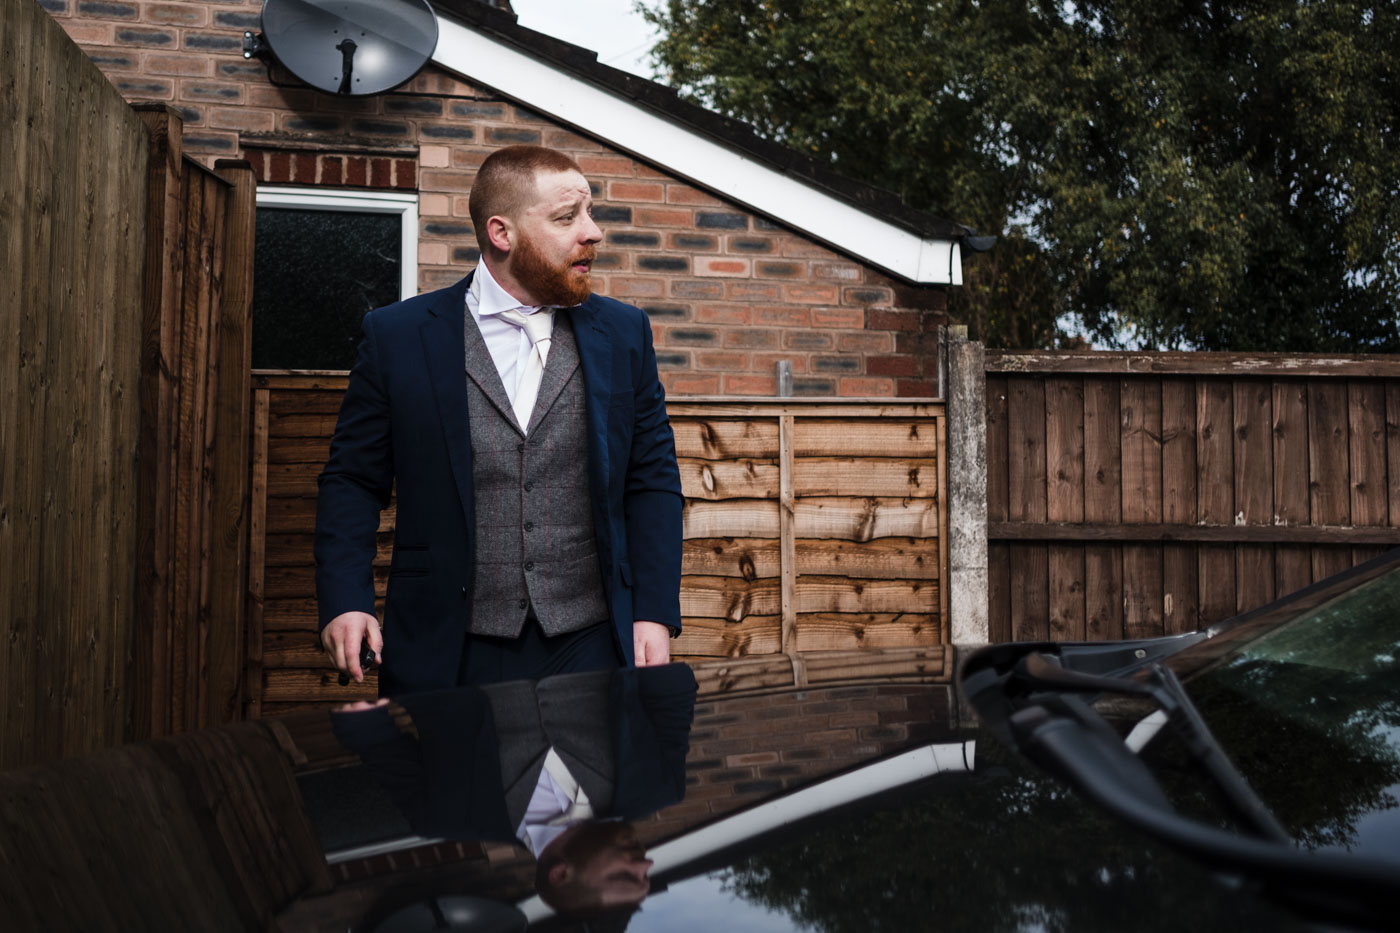 groom with reflection in car